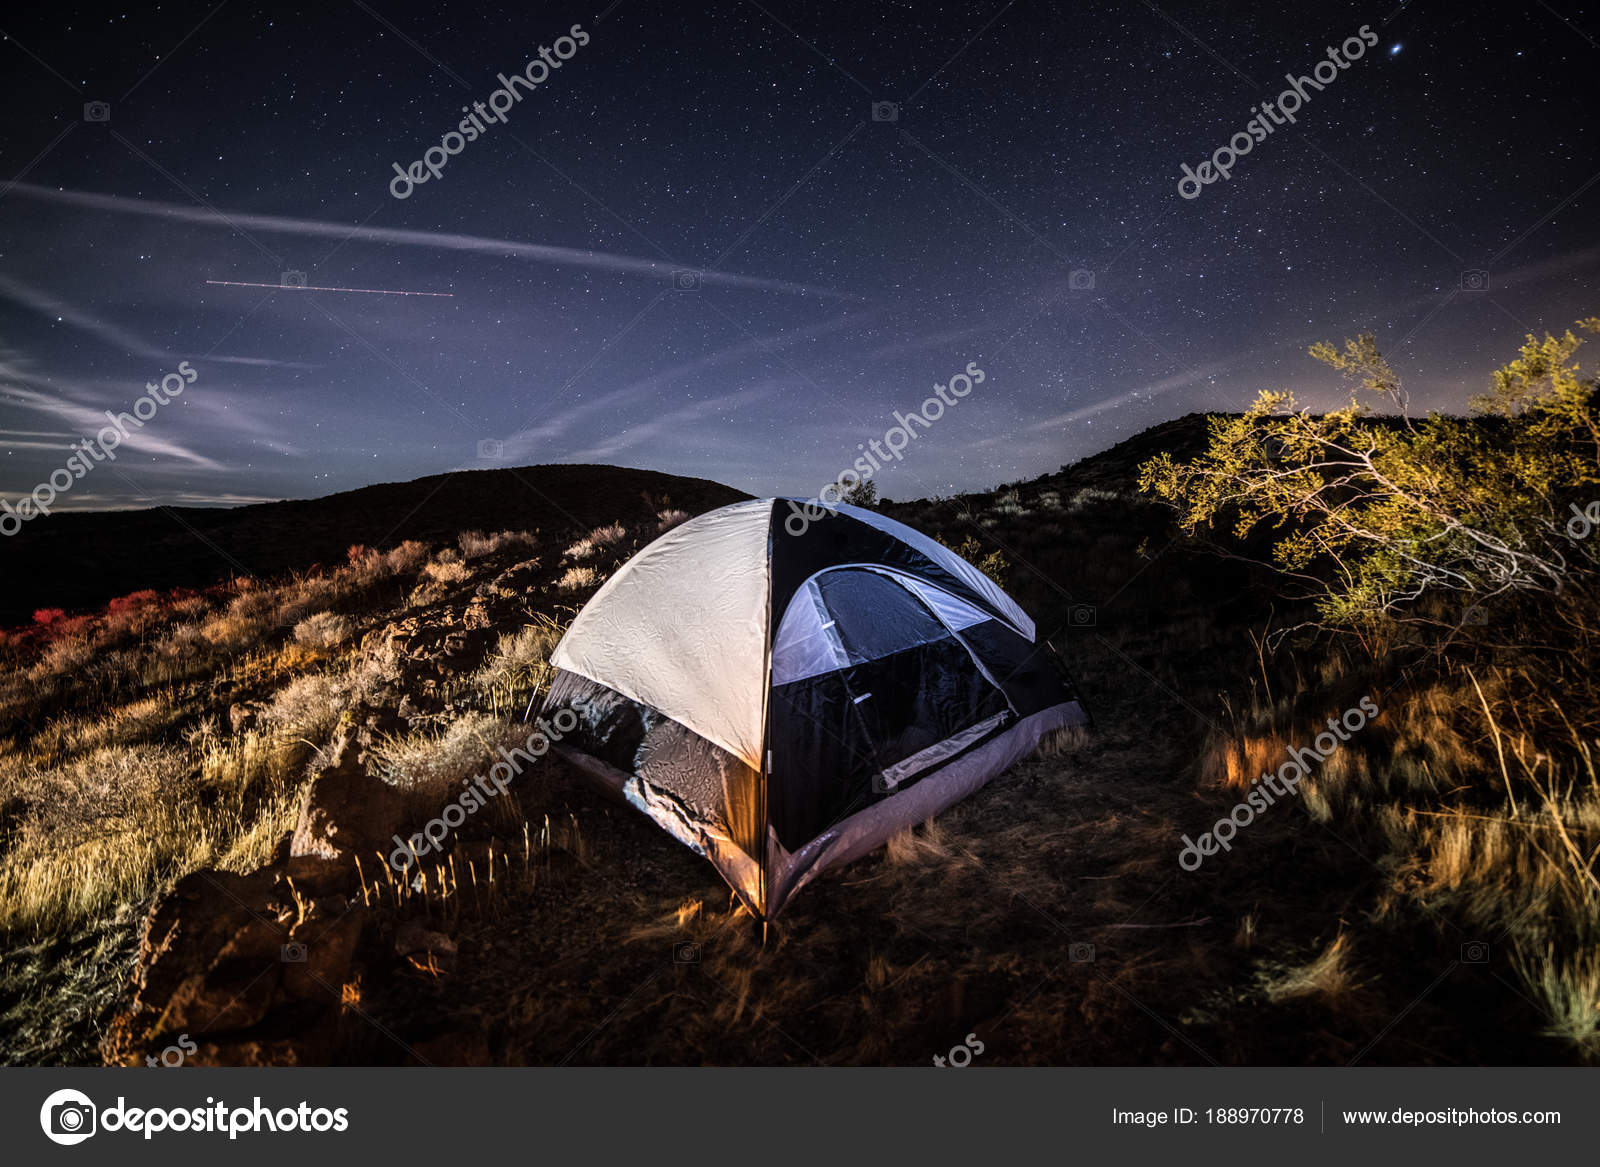 Camping In The Tent Scenic Desert Against Night Sky With Stars Photo By JANIFEST